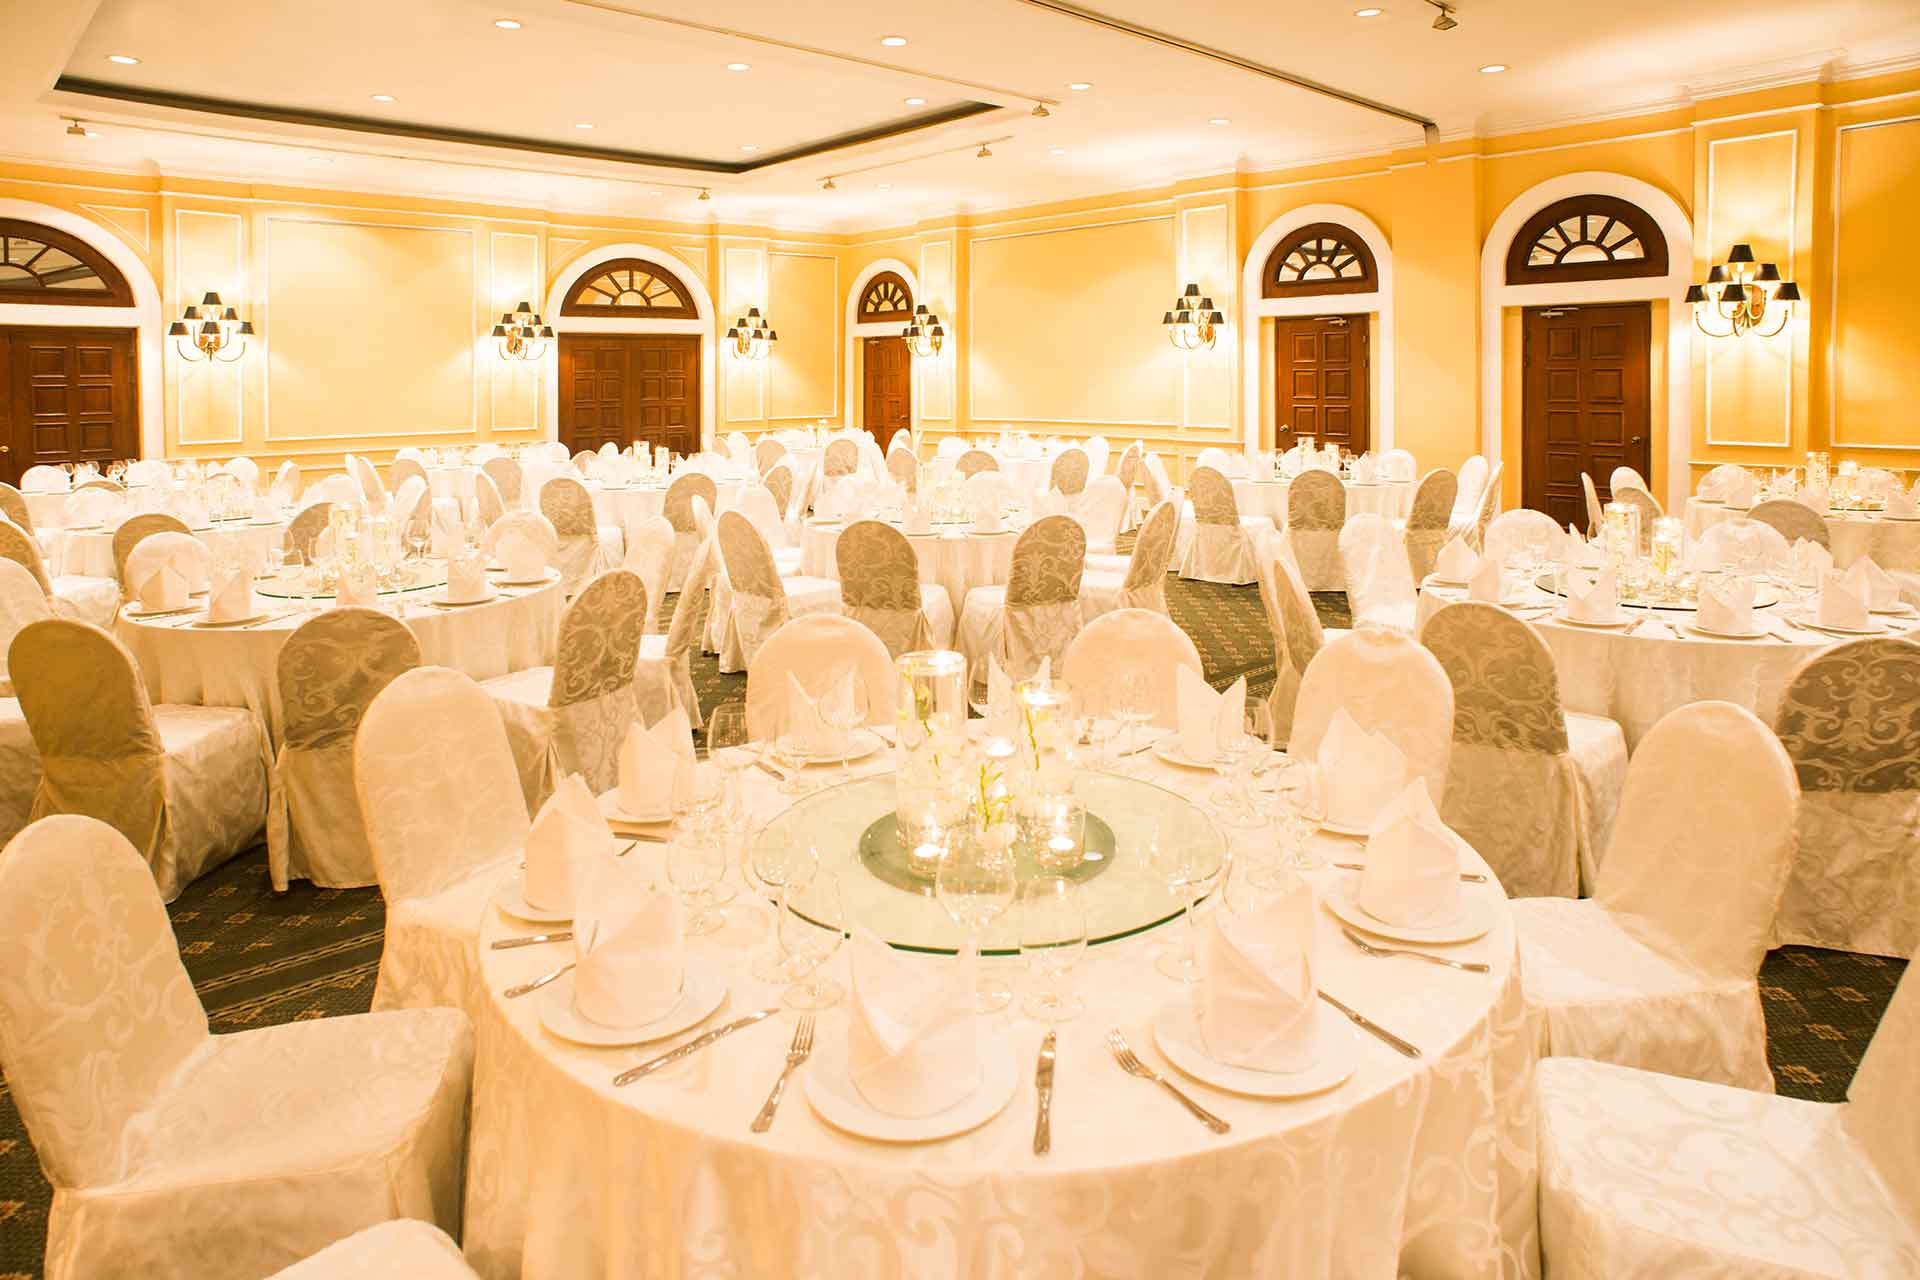 The banquet hall of AVANI Hai Phong